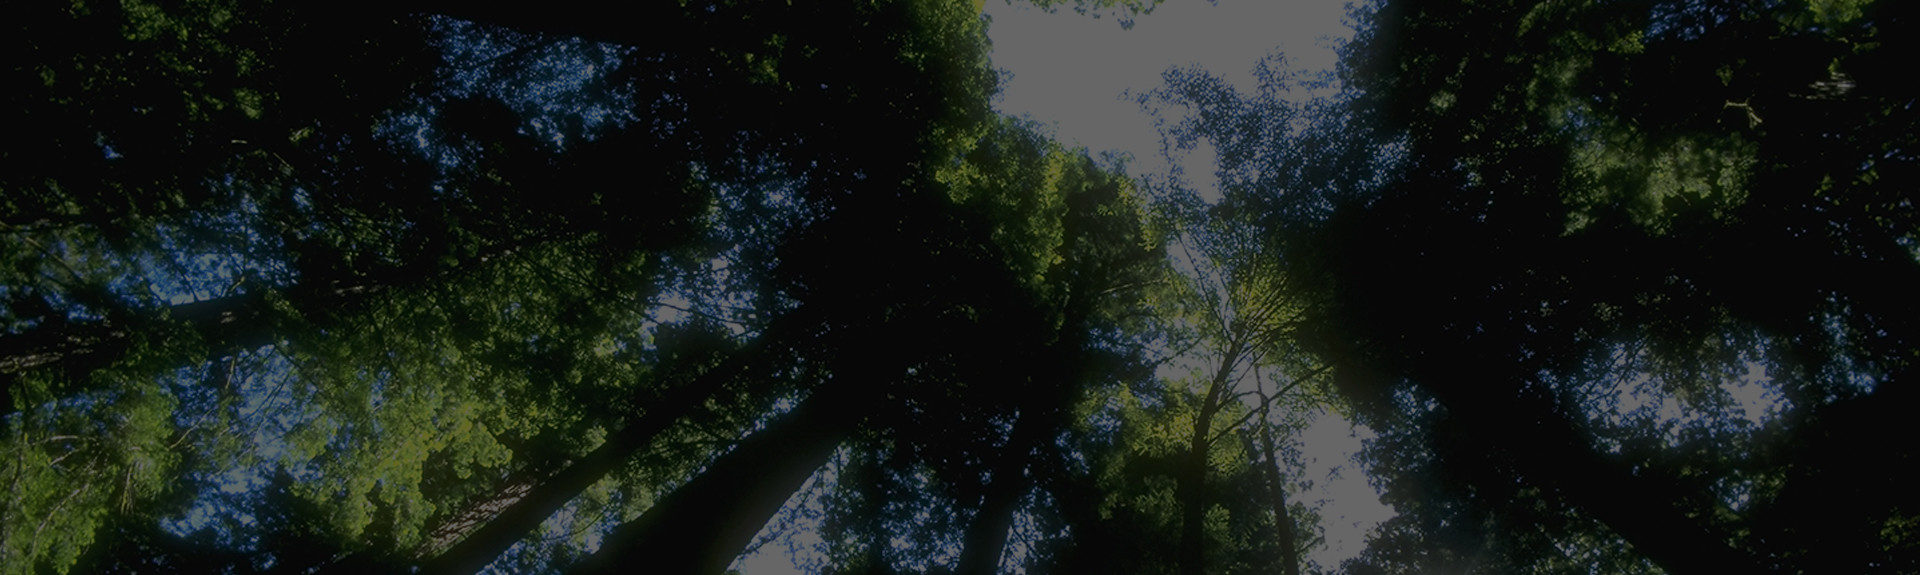 Image of tall trees